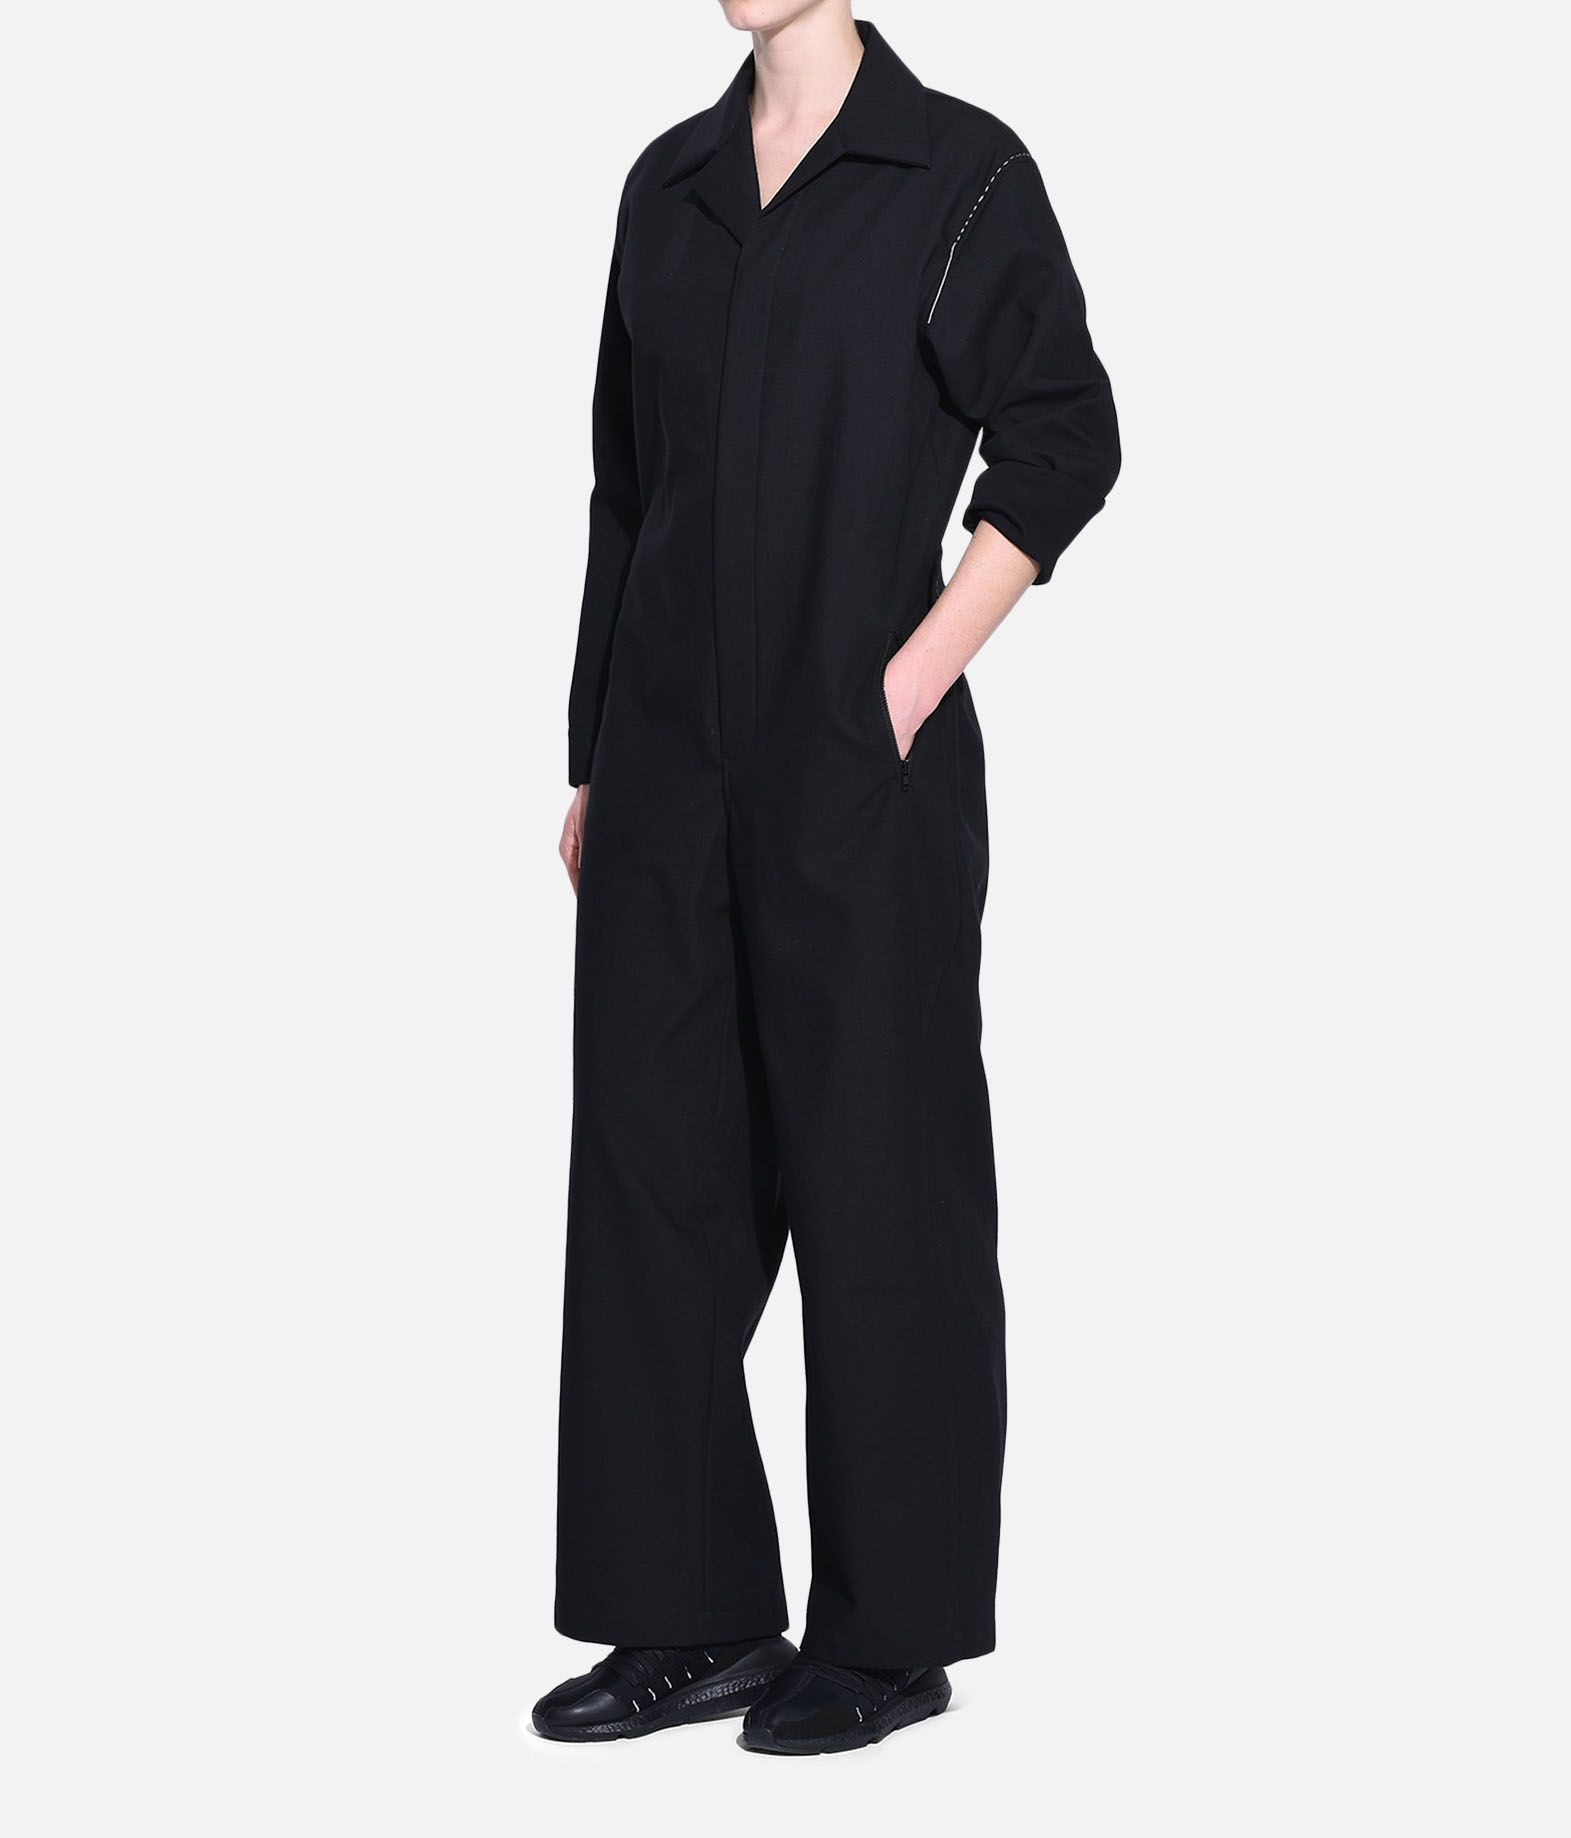 Y-3 Y-3 Sashiko Jumpsuit Overall Woman e